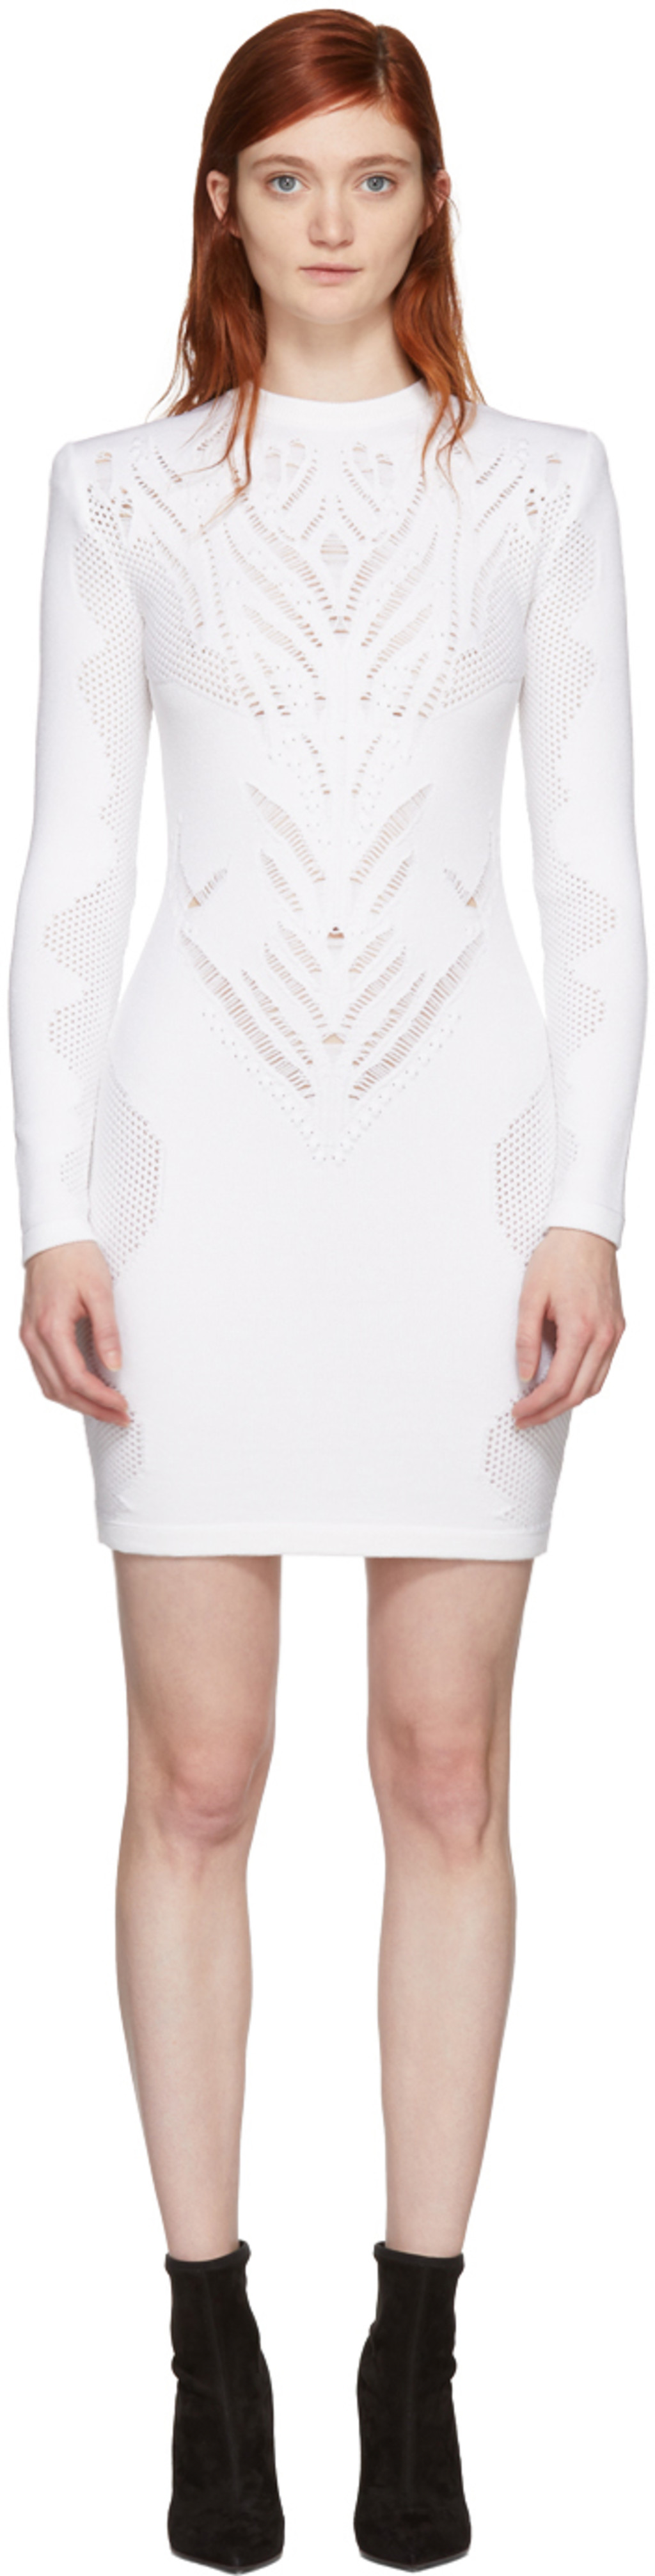 Dress for Women, Evening Cocktail Party On Sale, White, Cotton, 2017, 8 Dsquared2